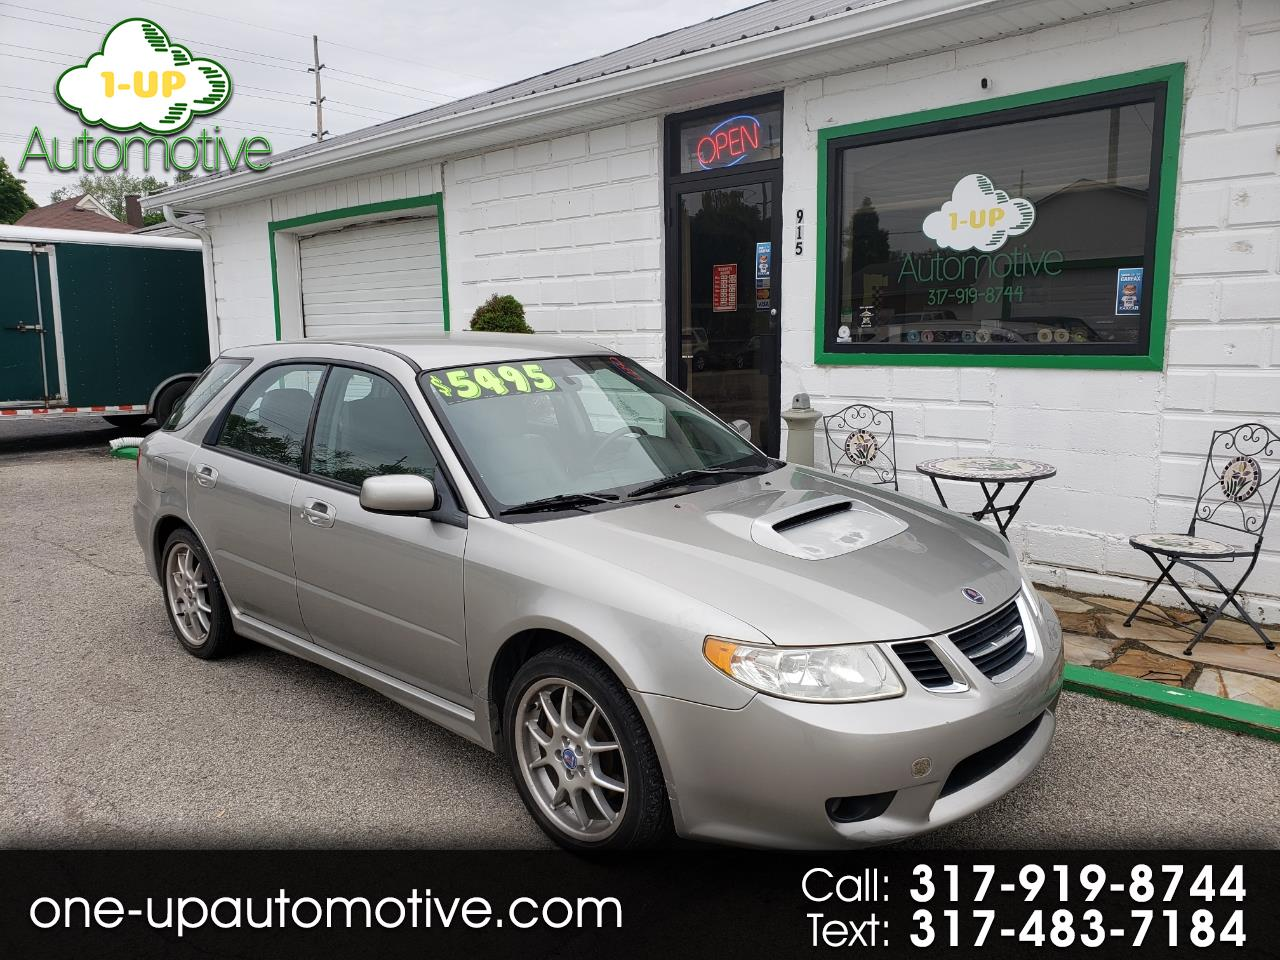 2005 Saab 9-2X Aero AWD 4dr Turbo Wagon